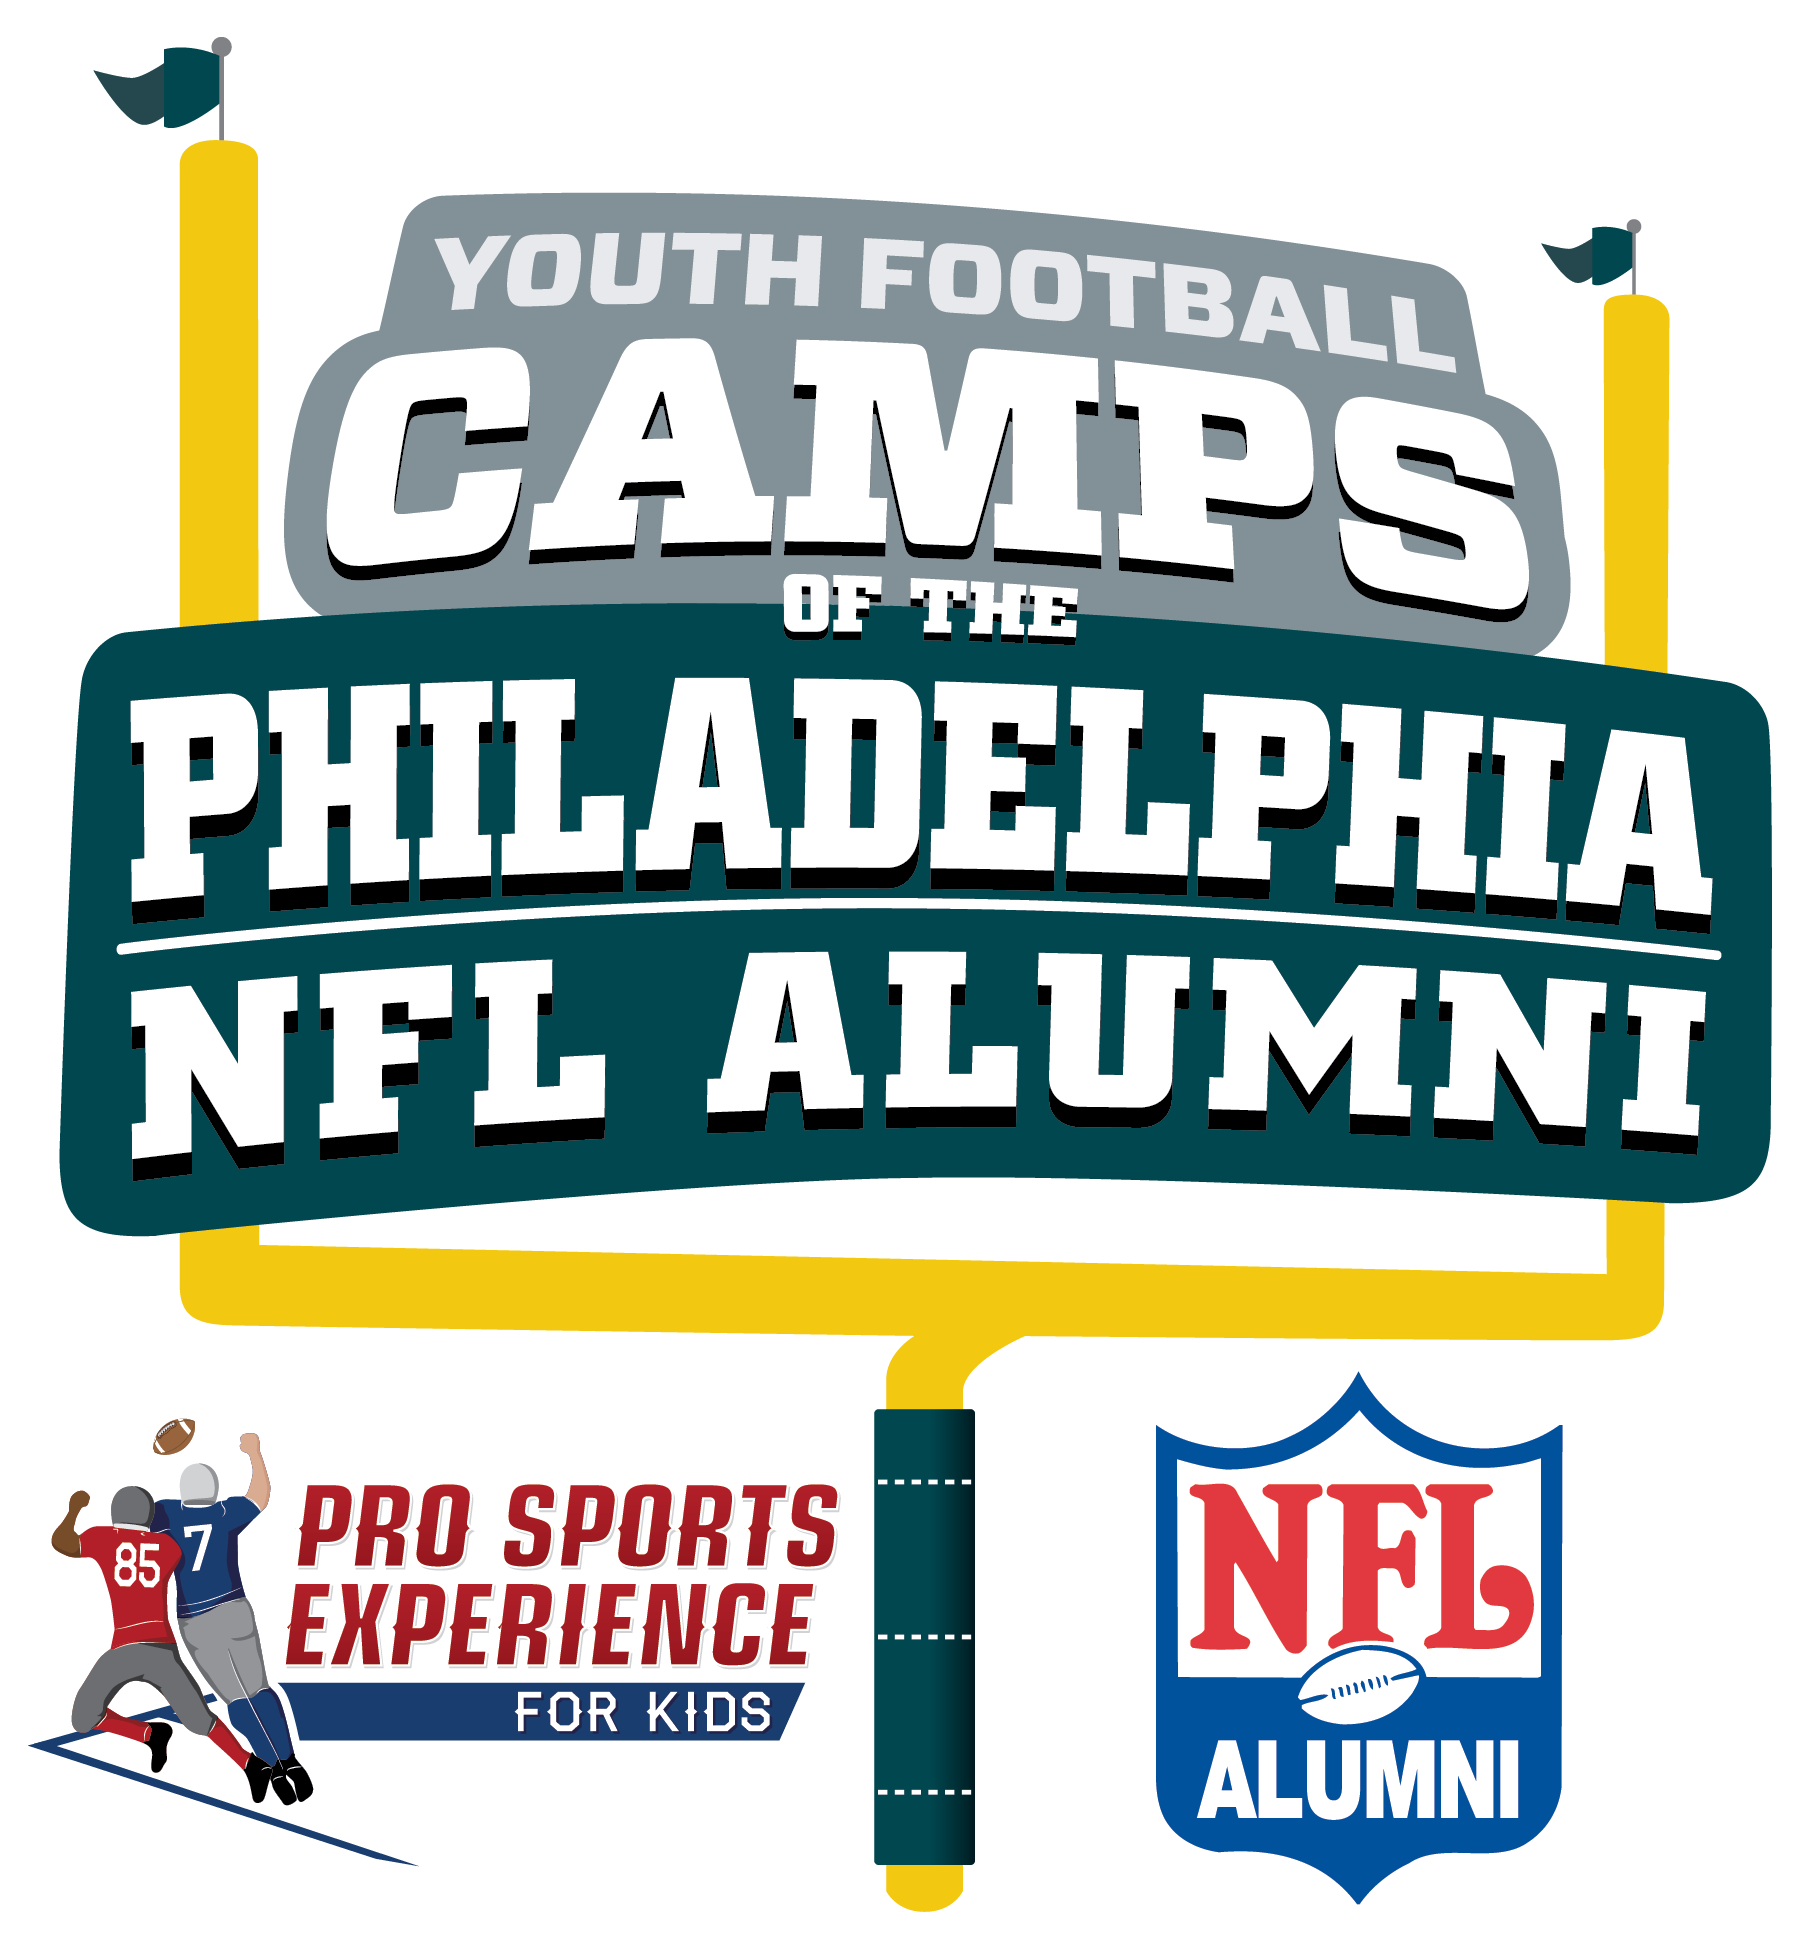 Philadelphia NFL Alumni Hero Youth Football Camps - Sewell